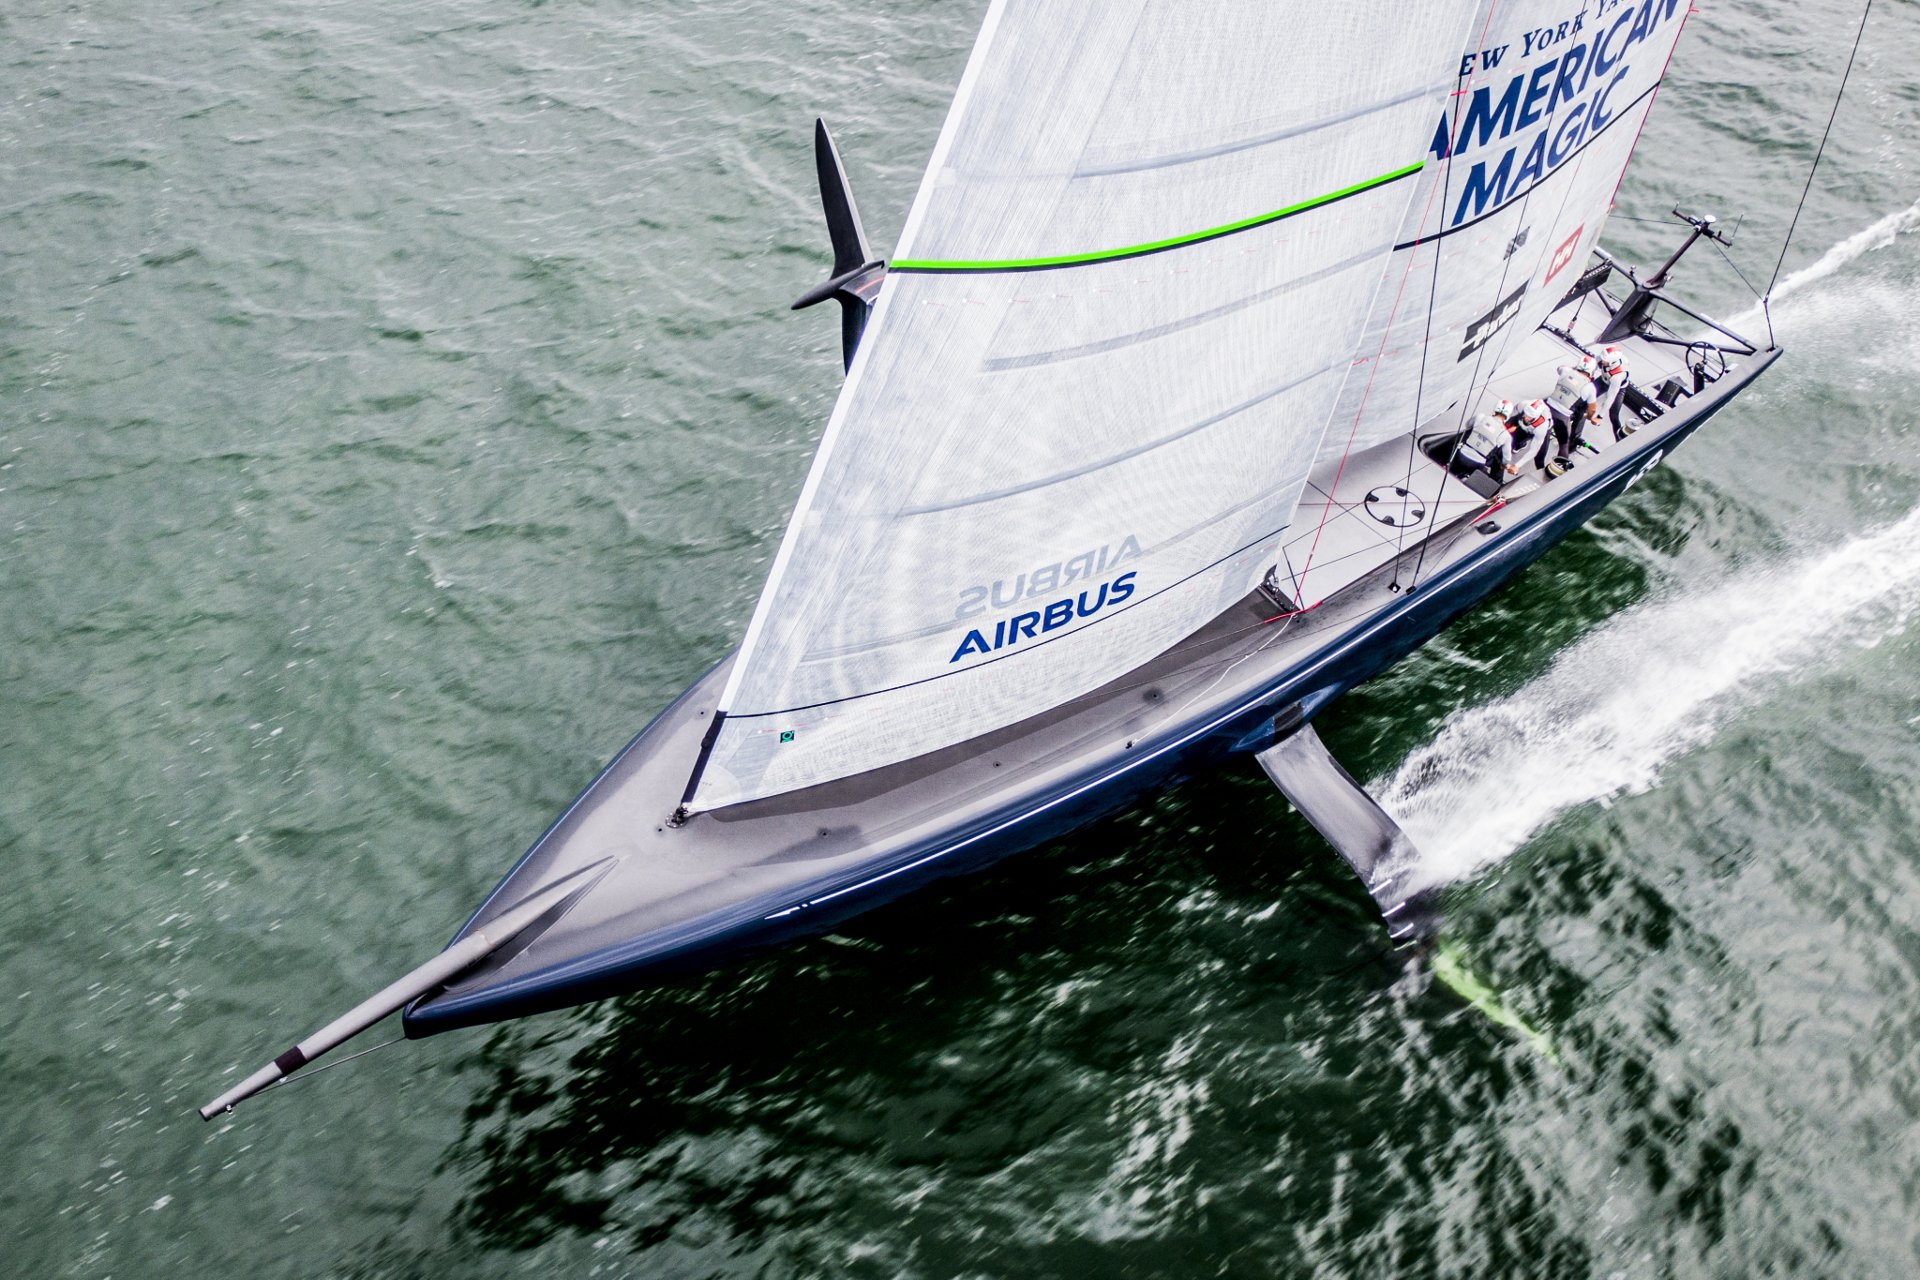 American Magic flying towards the America's Cup